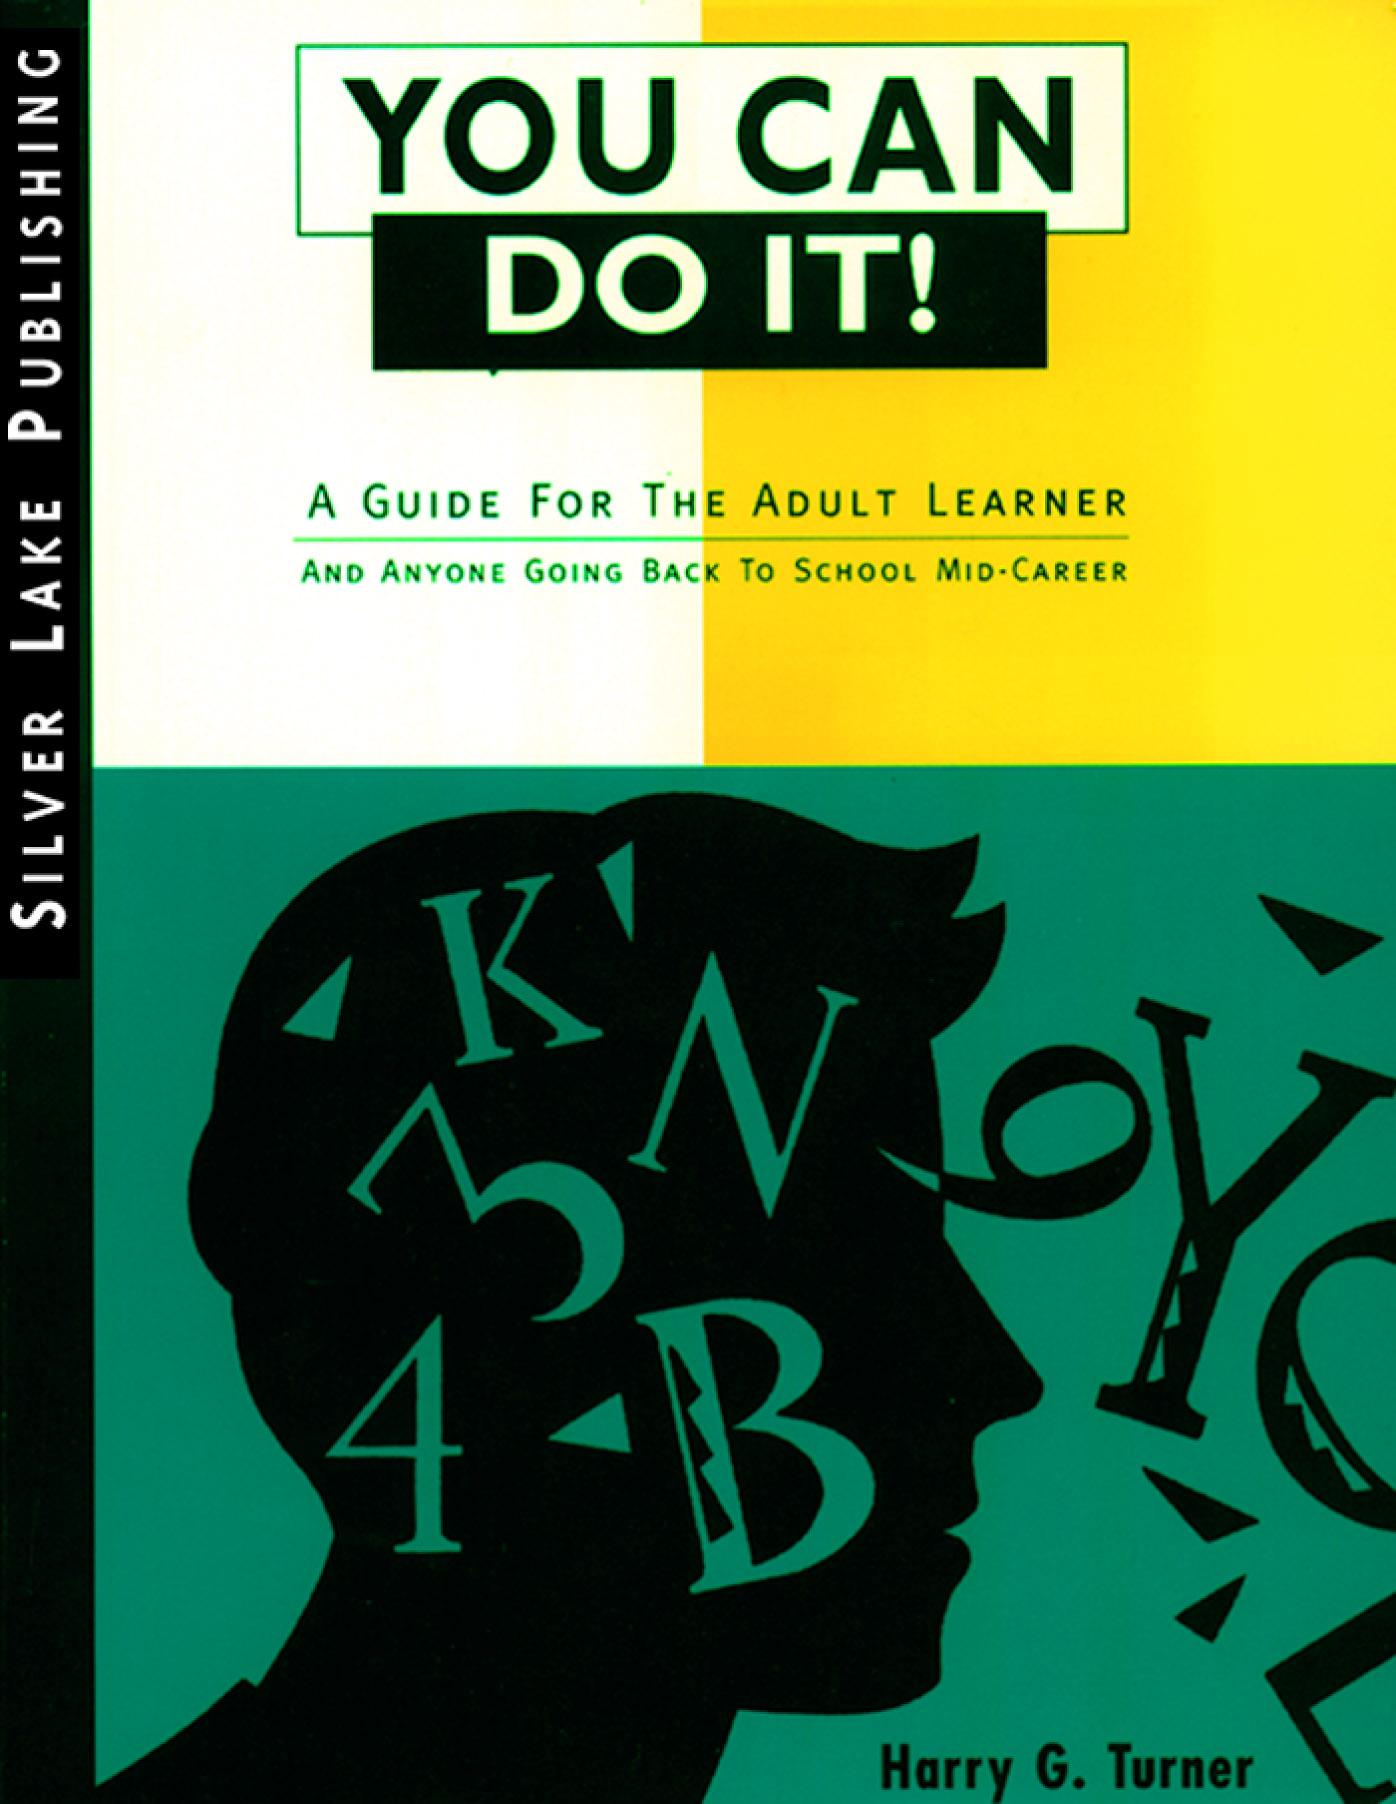 You Can Do It: A Guide for the Adult Learner and Anyone Going Back to School Mid-Career EB9781563438660